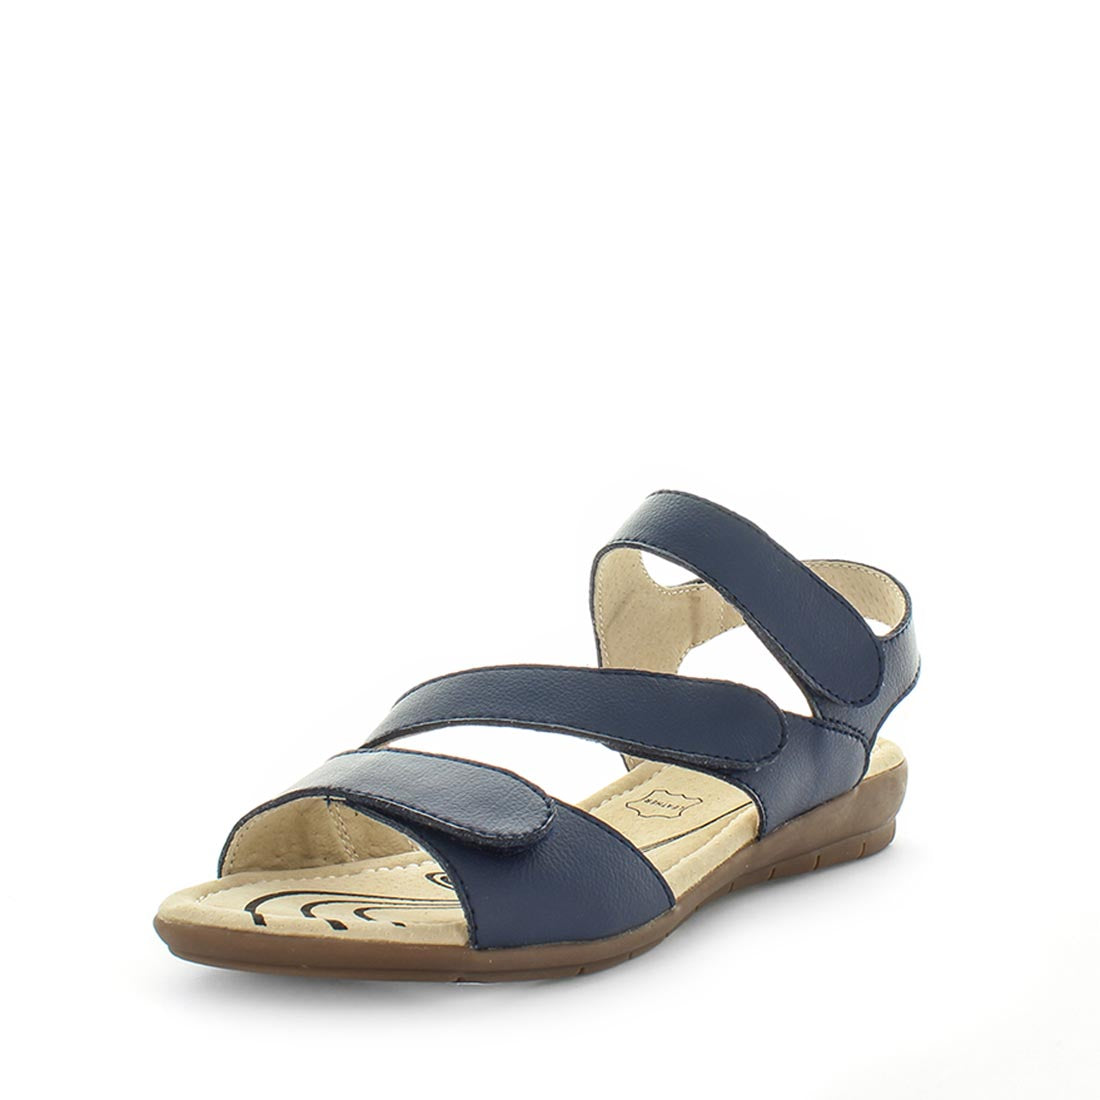 Chiara by Just Bee - ishoes - Women's Shoes, Women's Shoes: Flats, sandals, slip-ons, Sandals shoes, fashion shoes,  comfort shoes, women's sandals, casual shoes, casual footwear, comfort footwear, basic sandals with a comfort footbed in navy